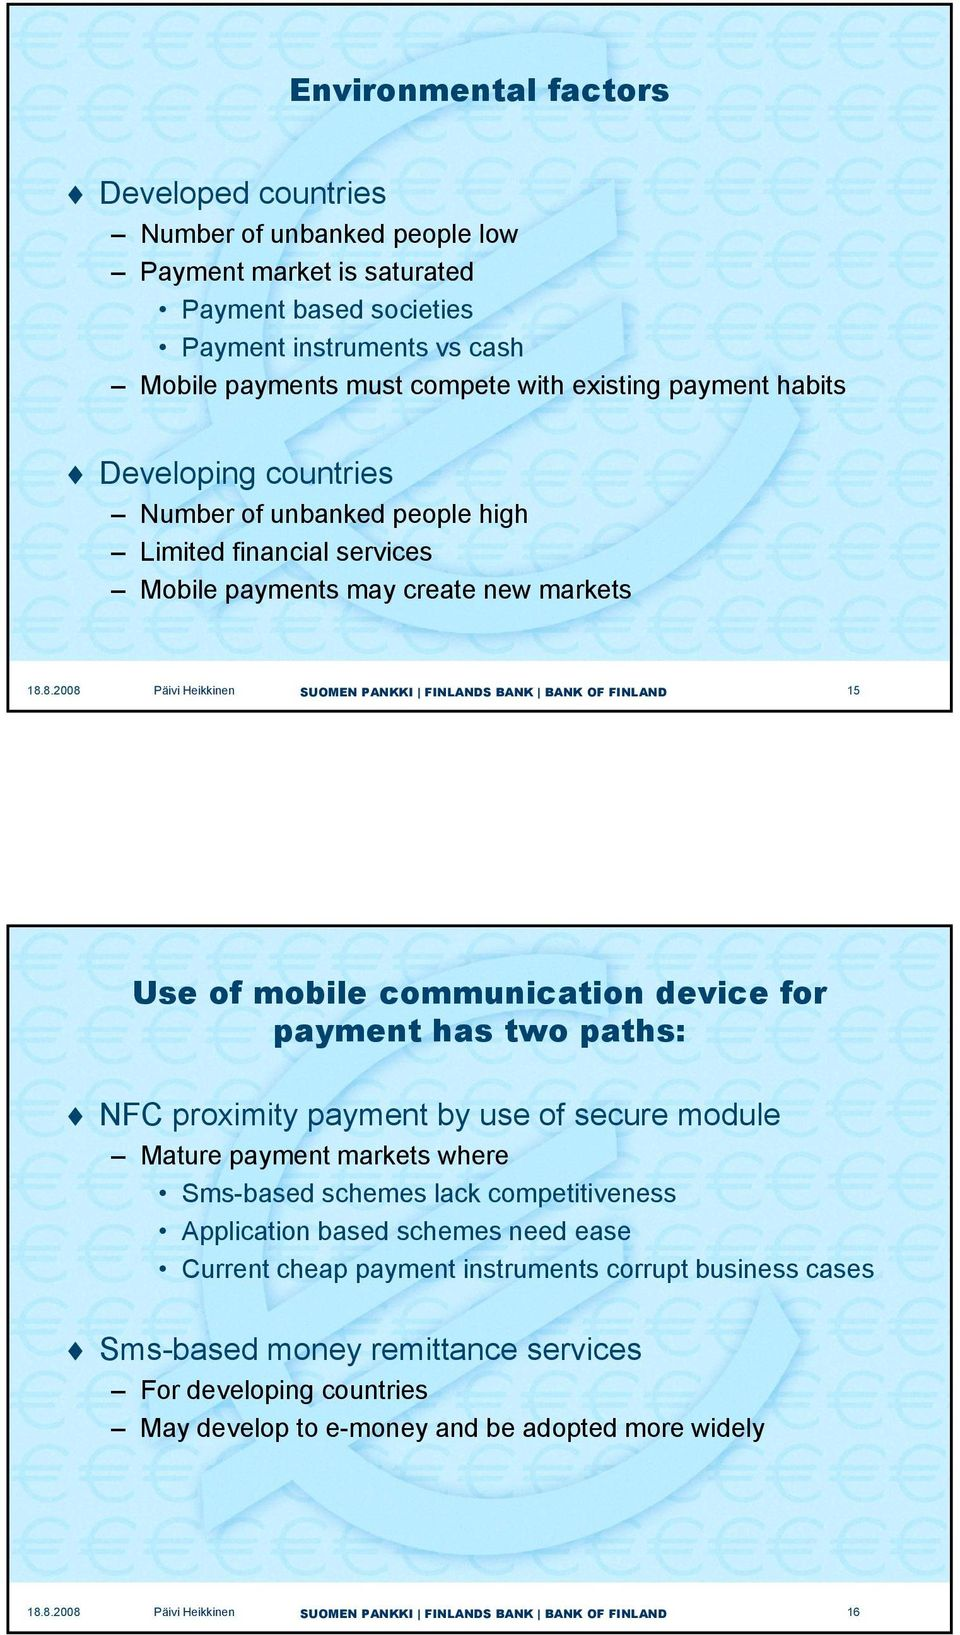 communication device for payment has two paths: NFC proximity payment by use of secure module Mature payment markets where Sms-based schemes lack competitiveness Application